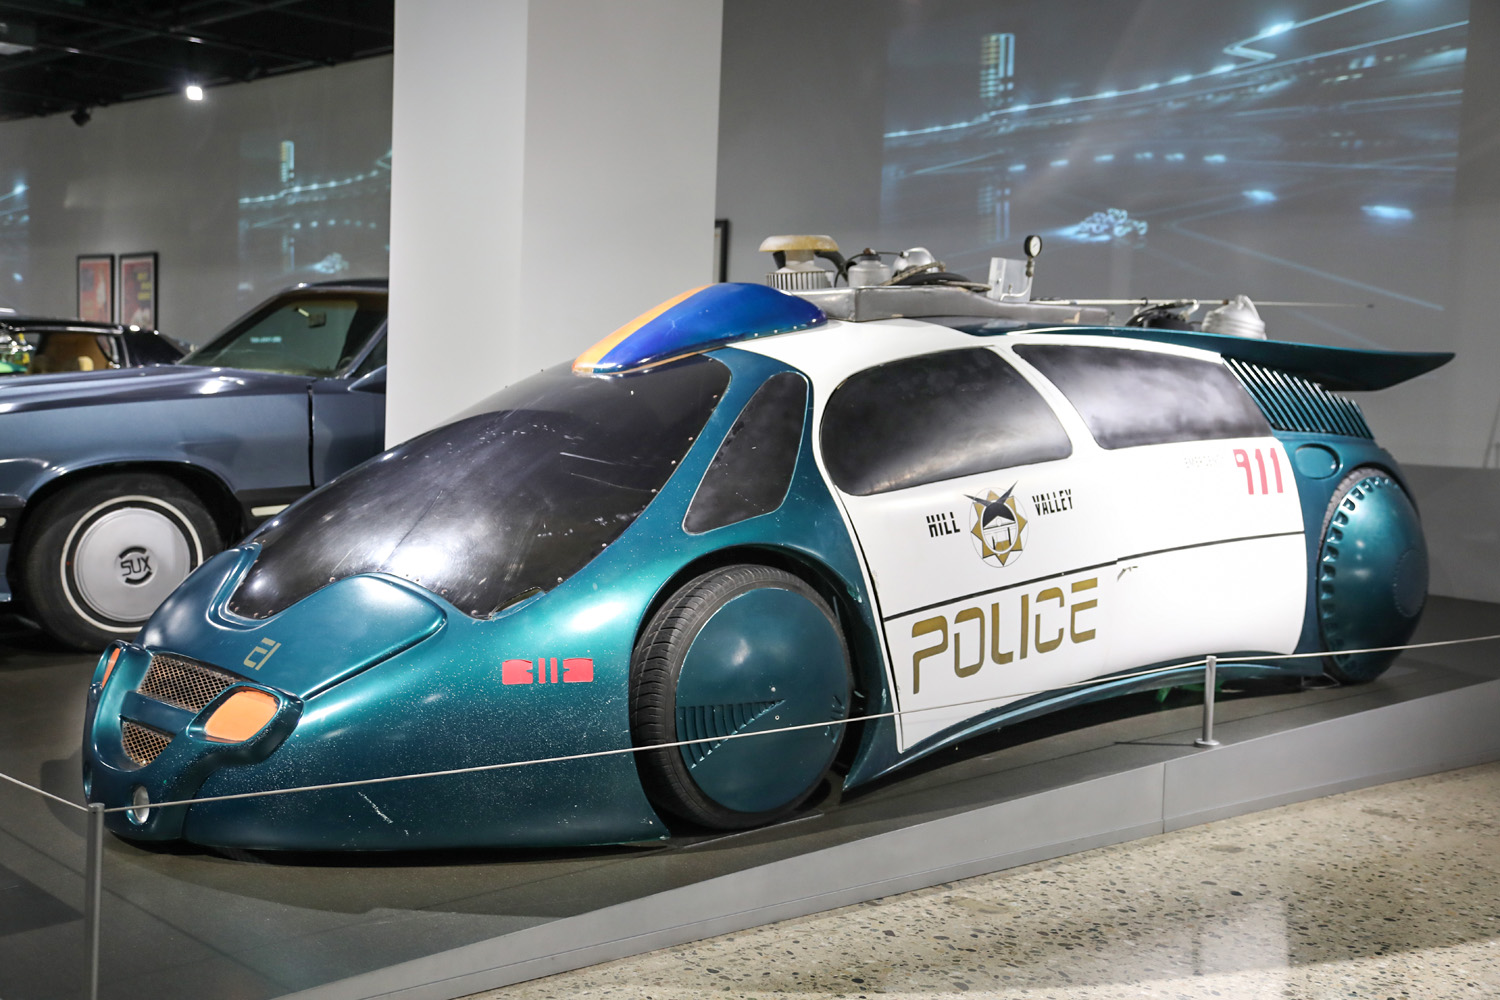 Vehicles of Science Fiction and Fantasy police car